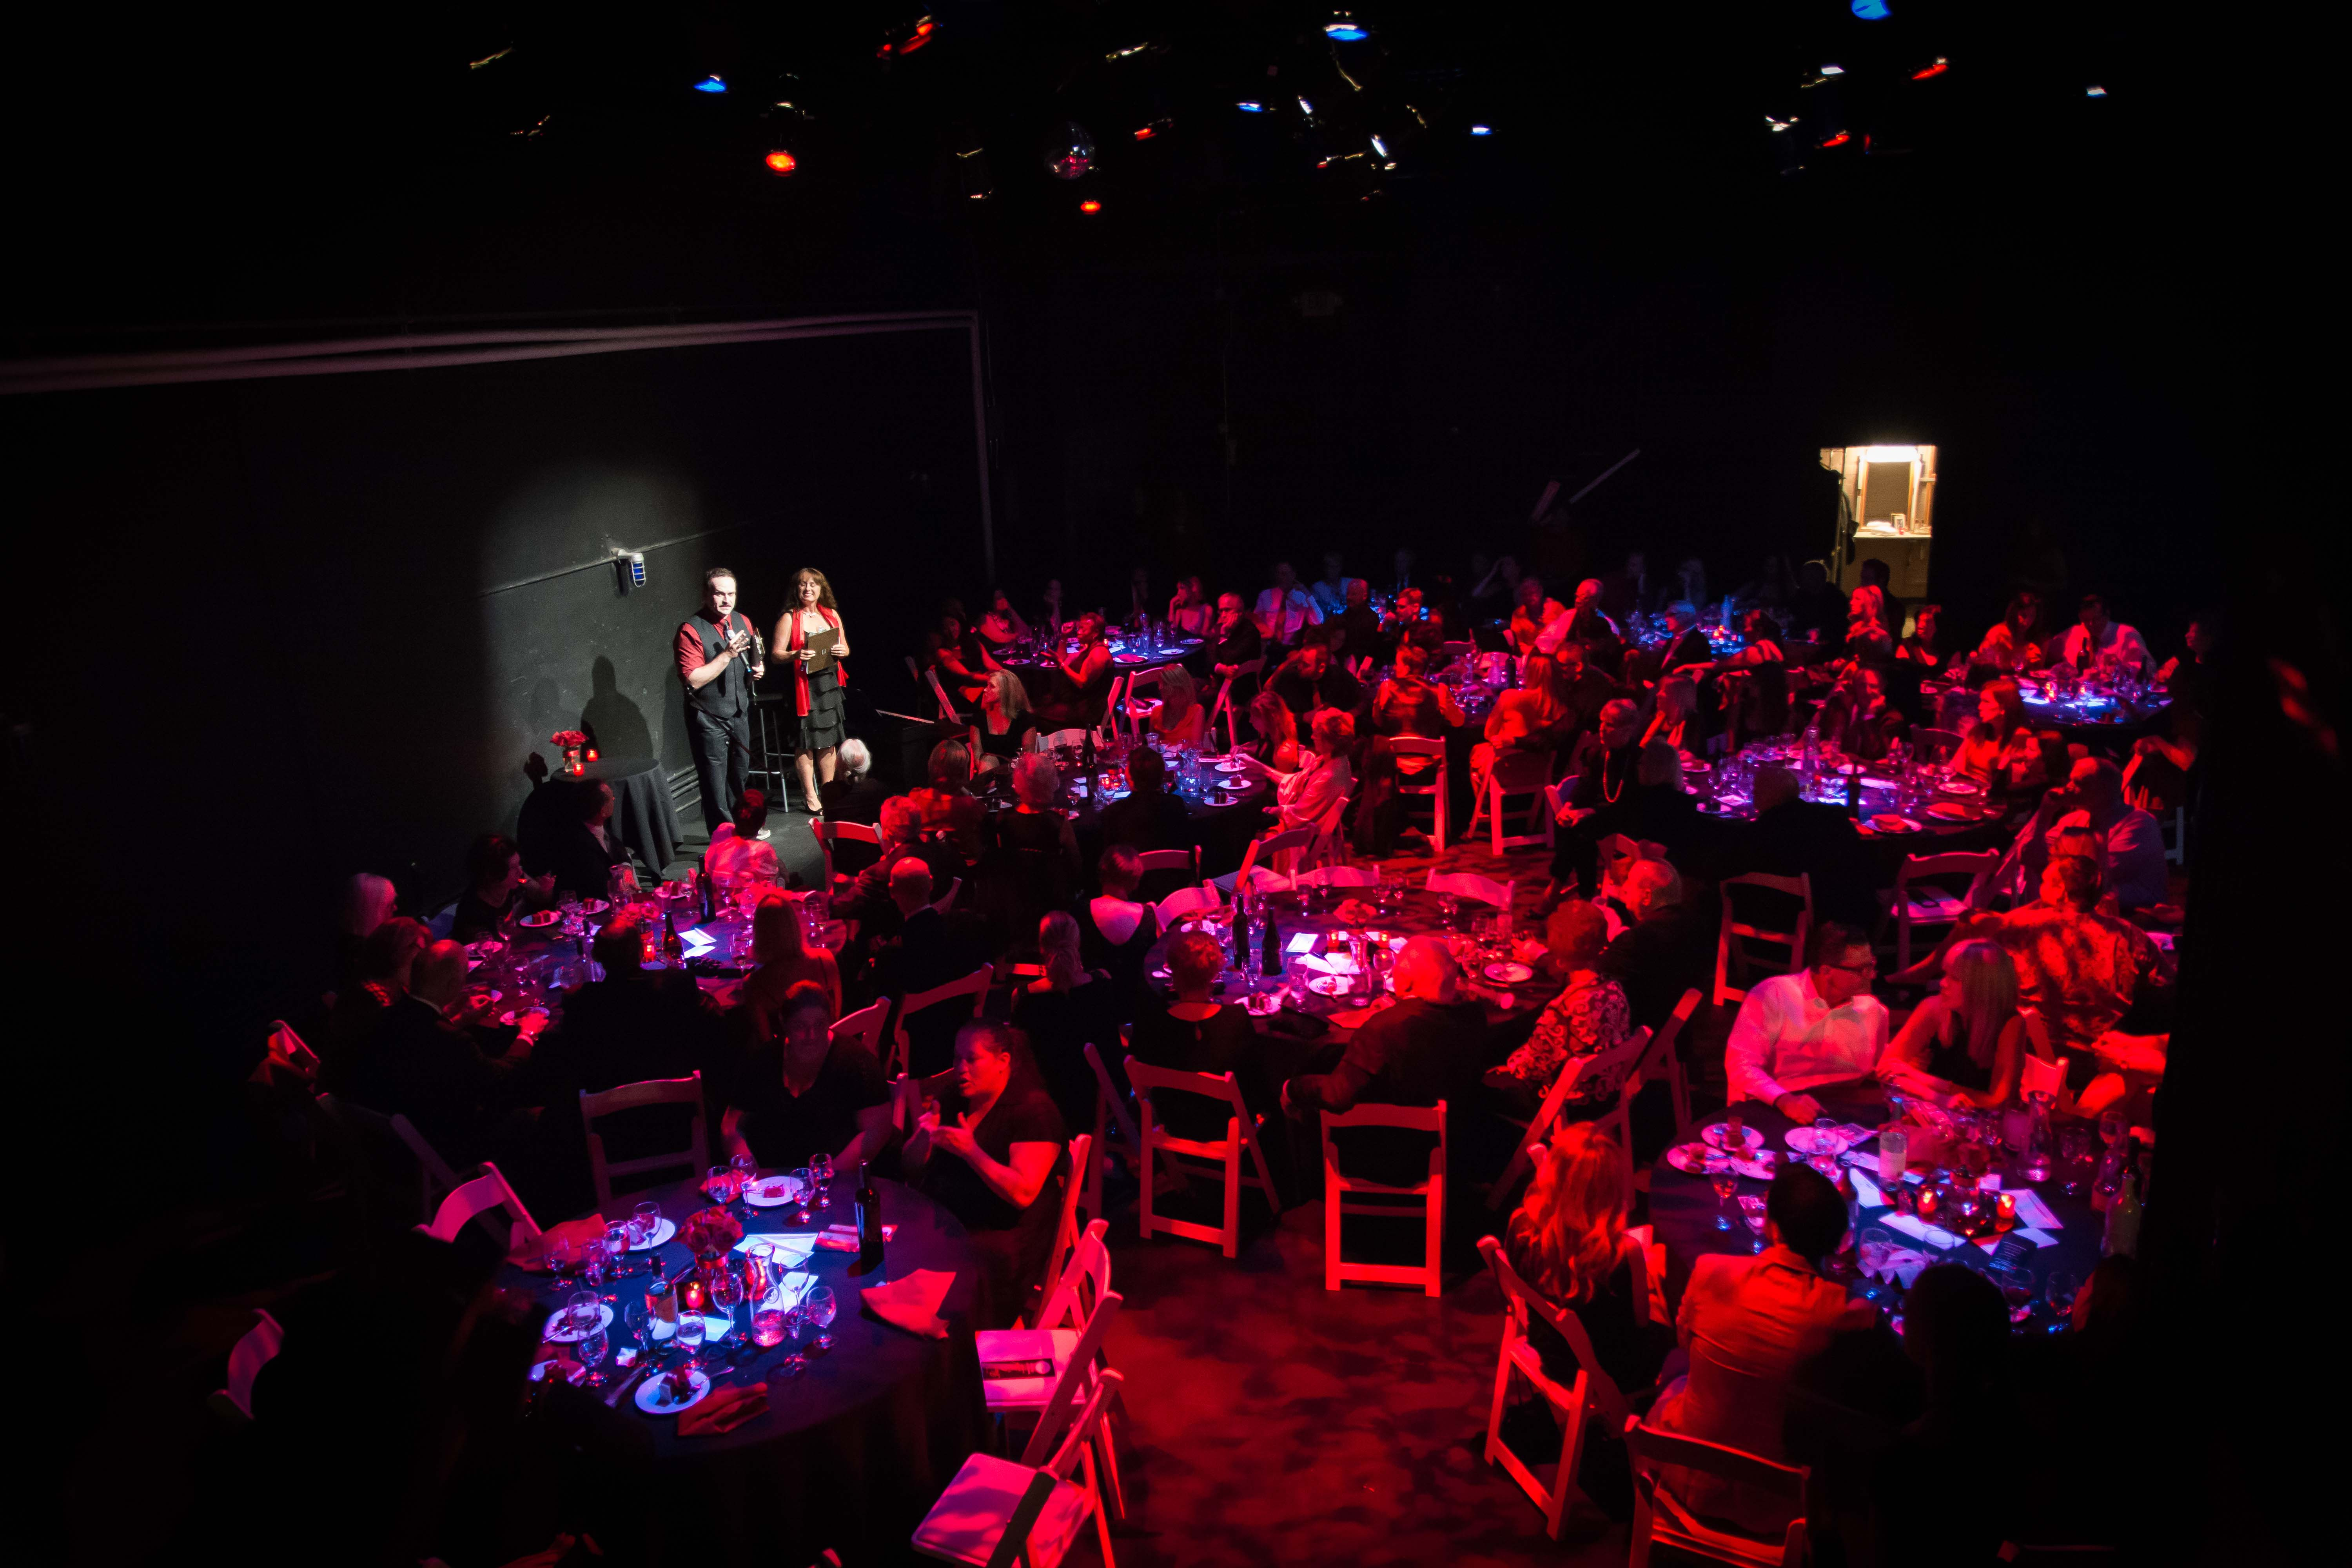 Dinner on Stage at the 1st Annual Black & Red Fundraising Gala in 2014